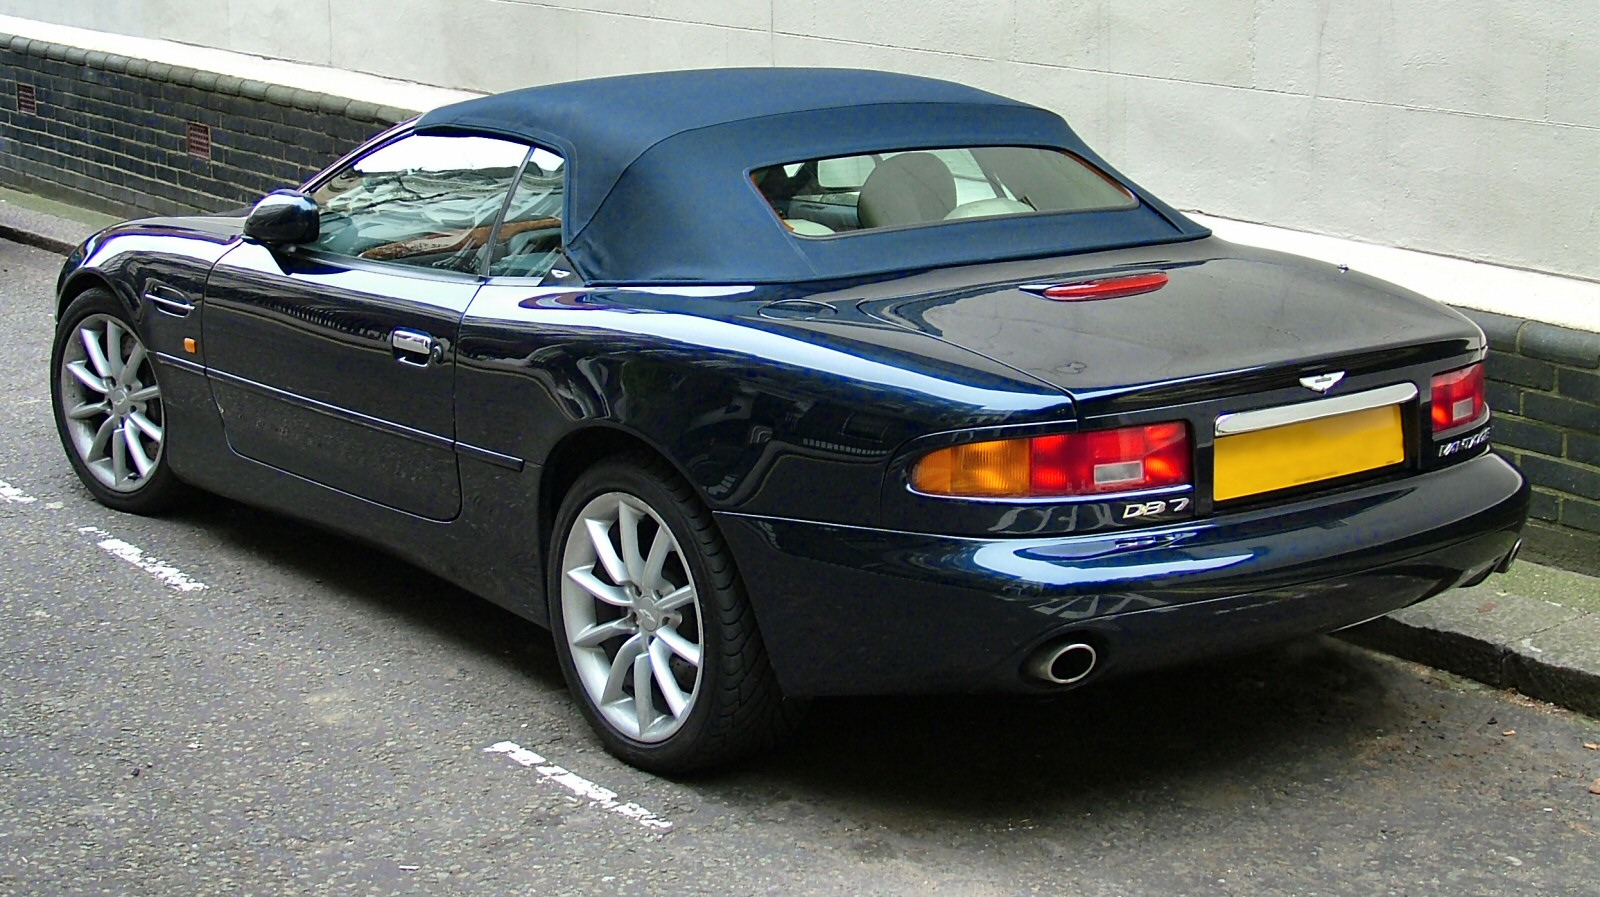 fileaston martin db7 vantage rearjpg wikipedia